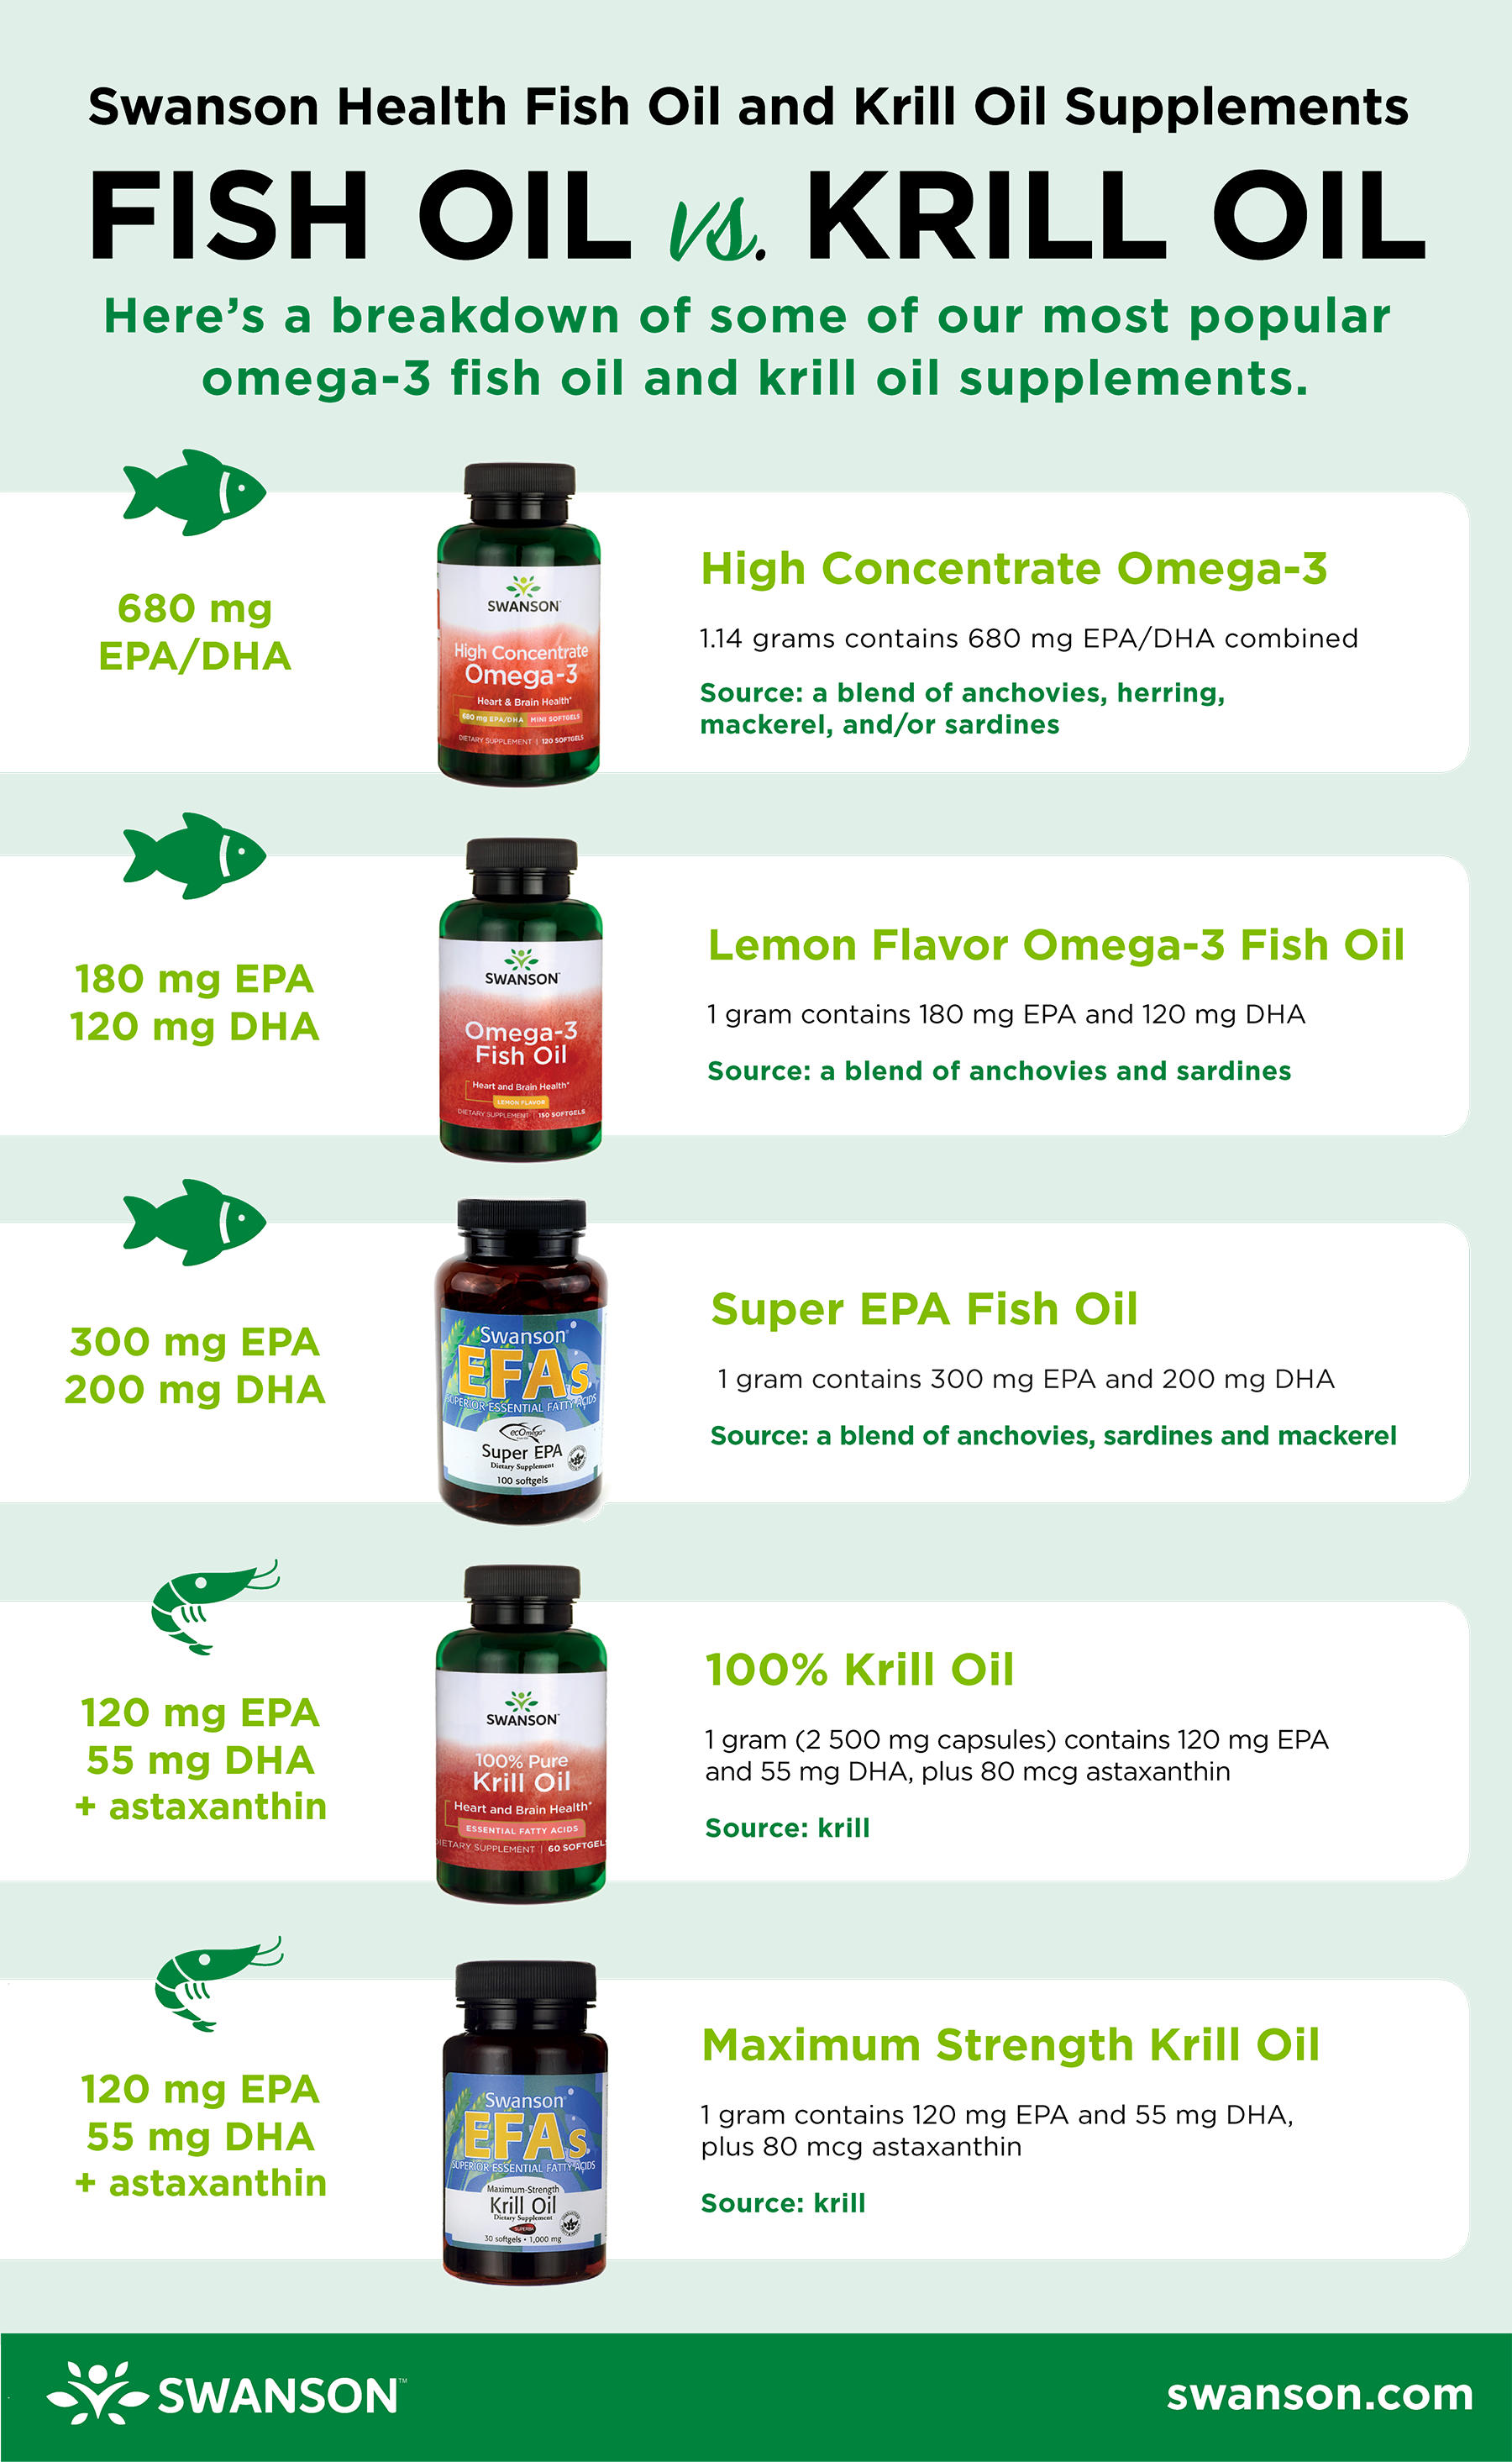 Fish Oil vs Krill Oil Supplements - a breakdown of omega-3 fatty acids in some of our popular supplements